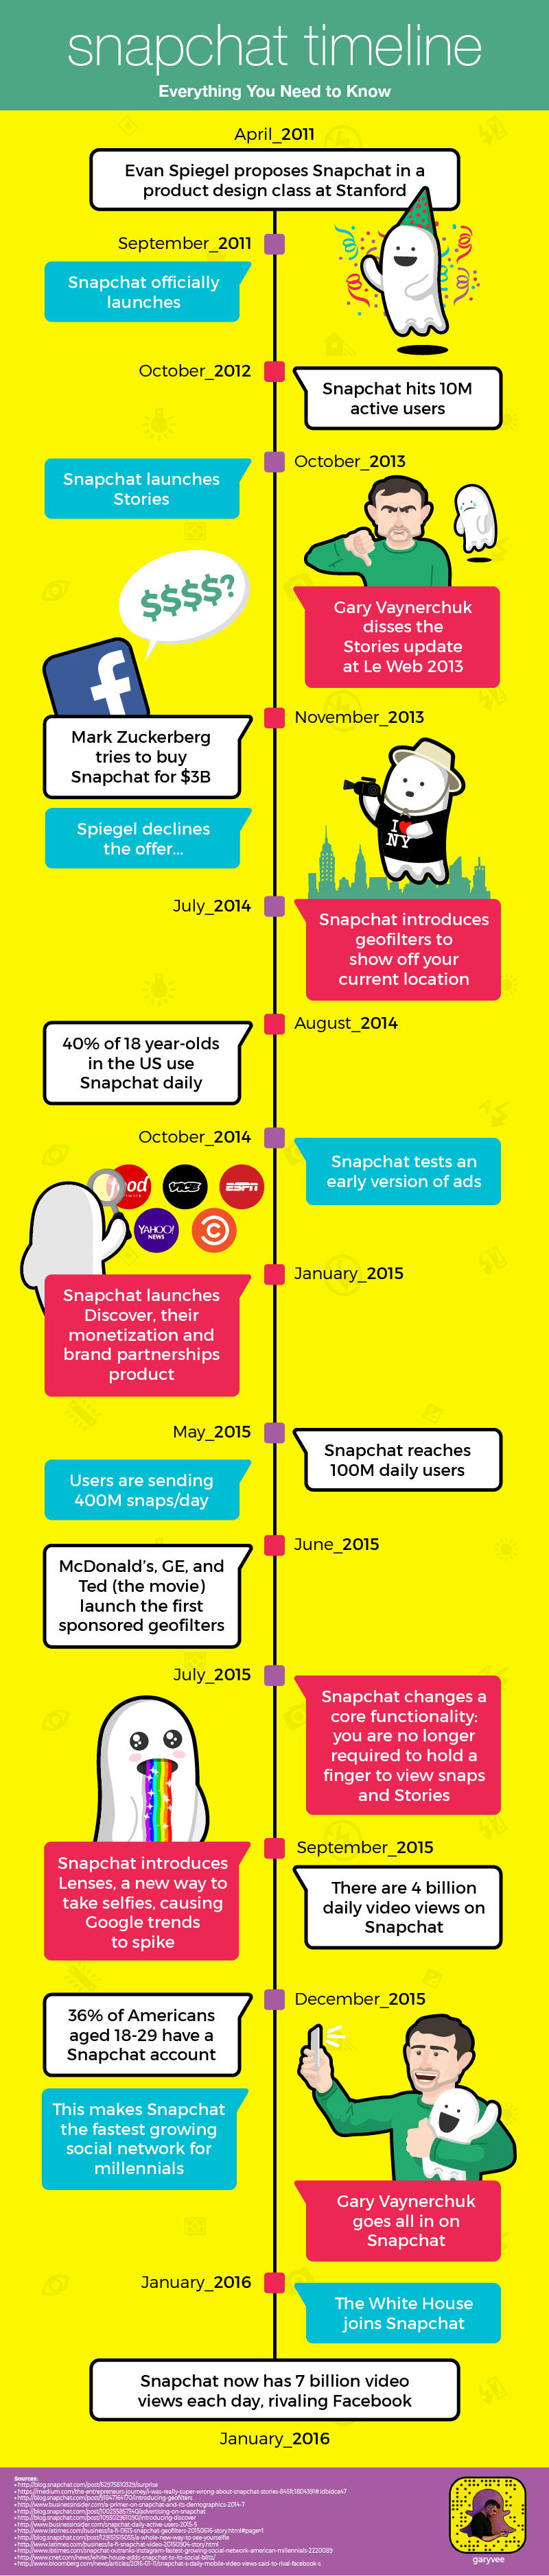 The-History-of-Snapchat-A-Timeline.png